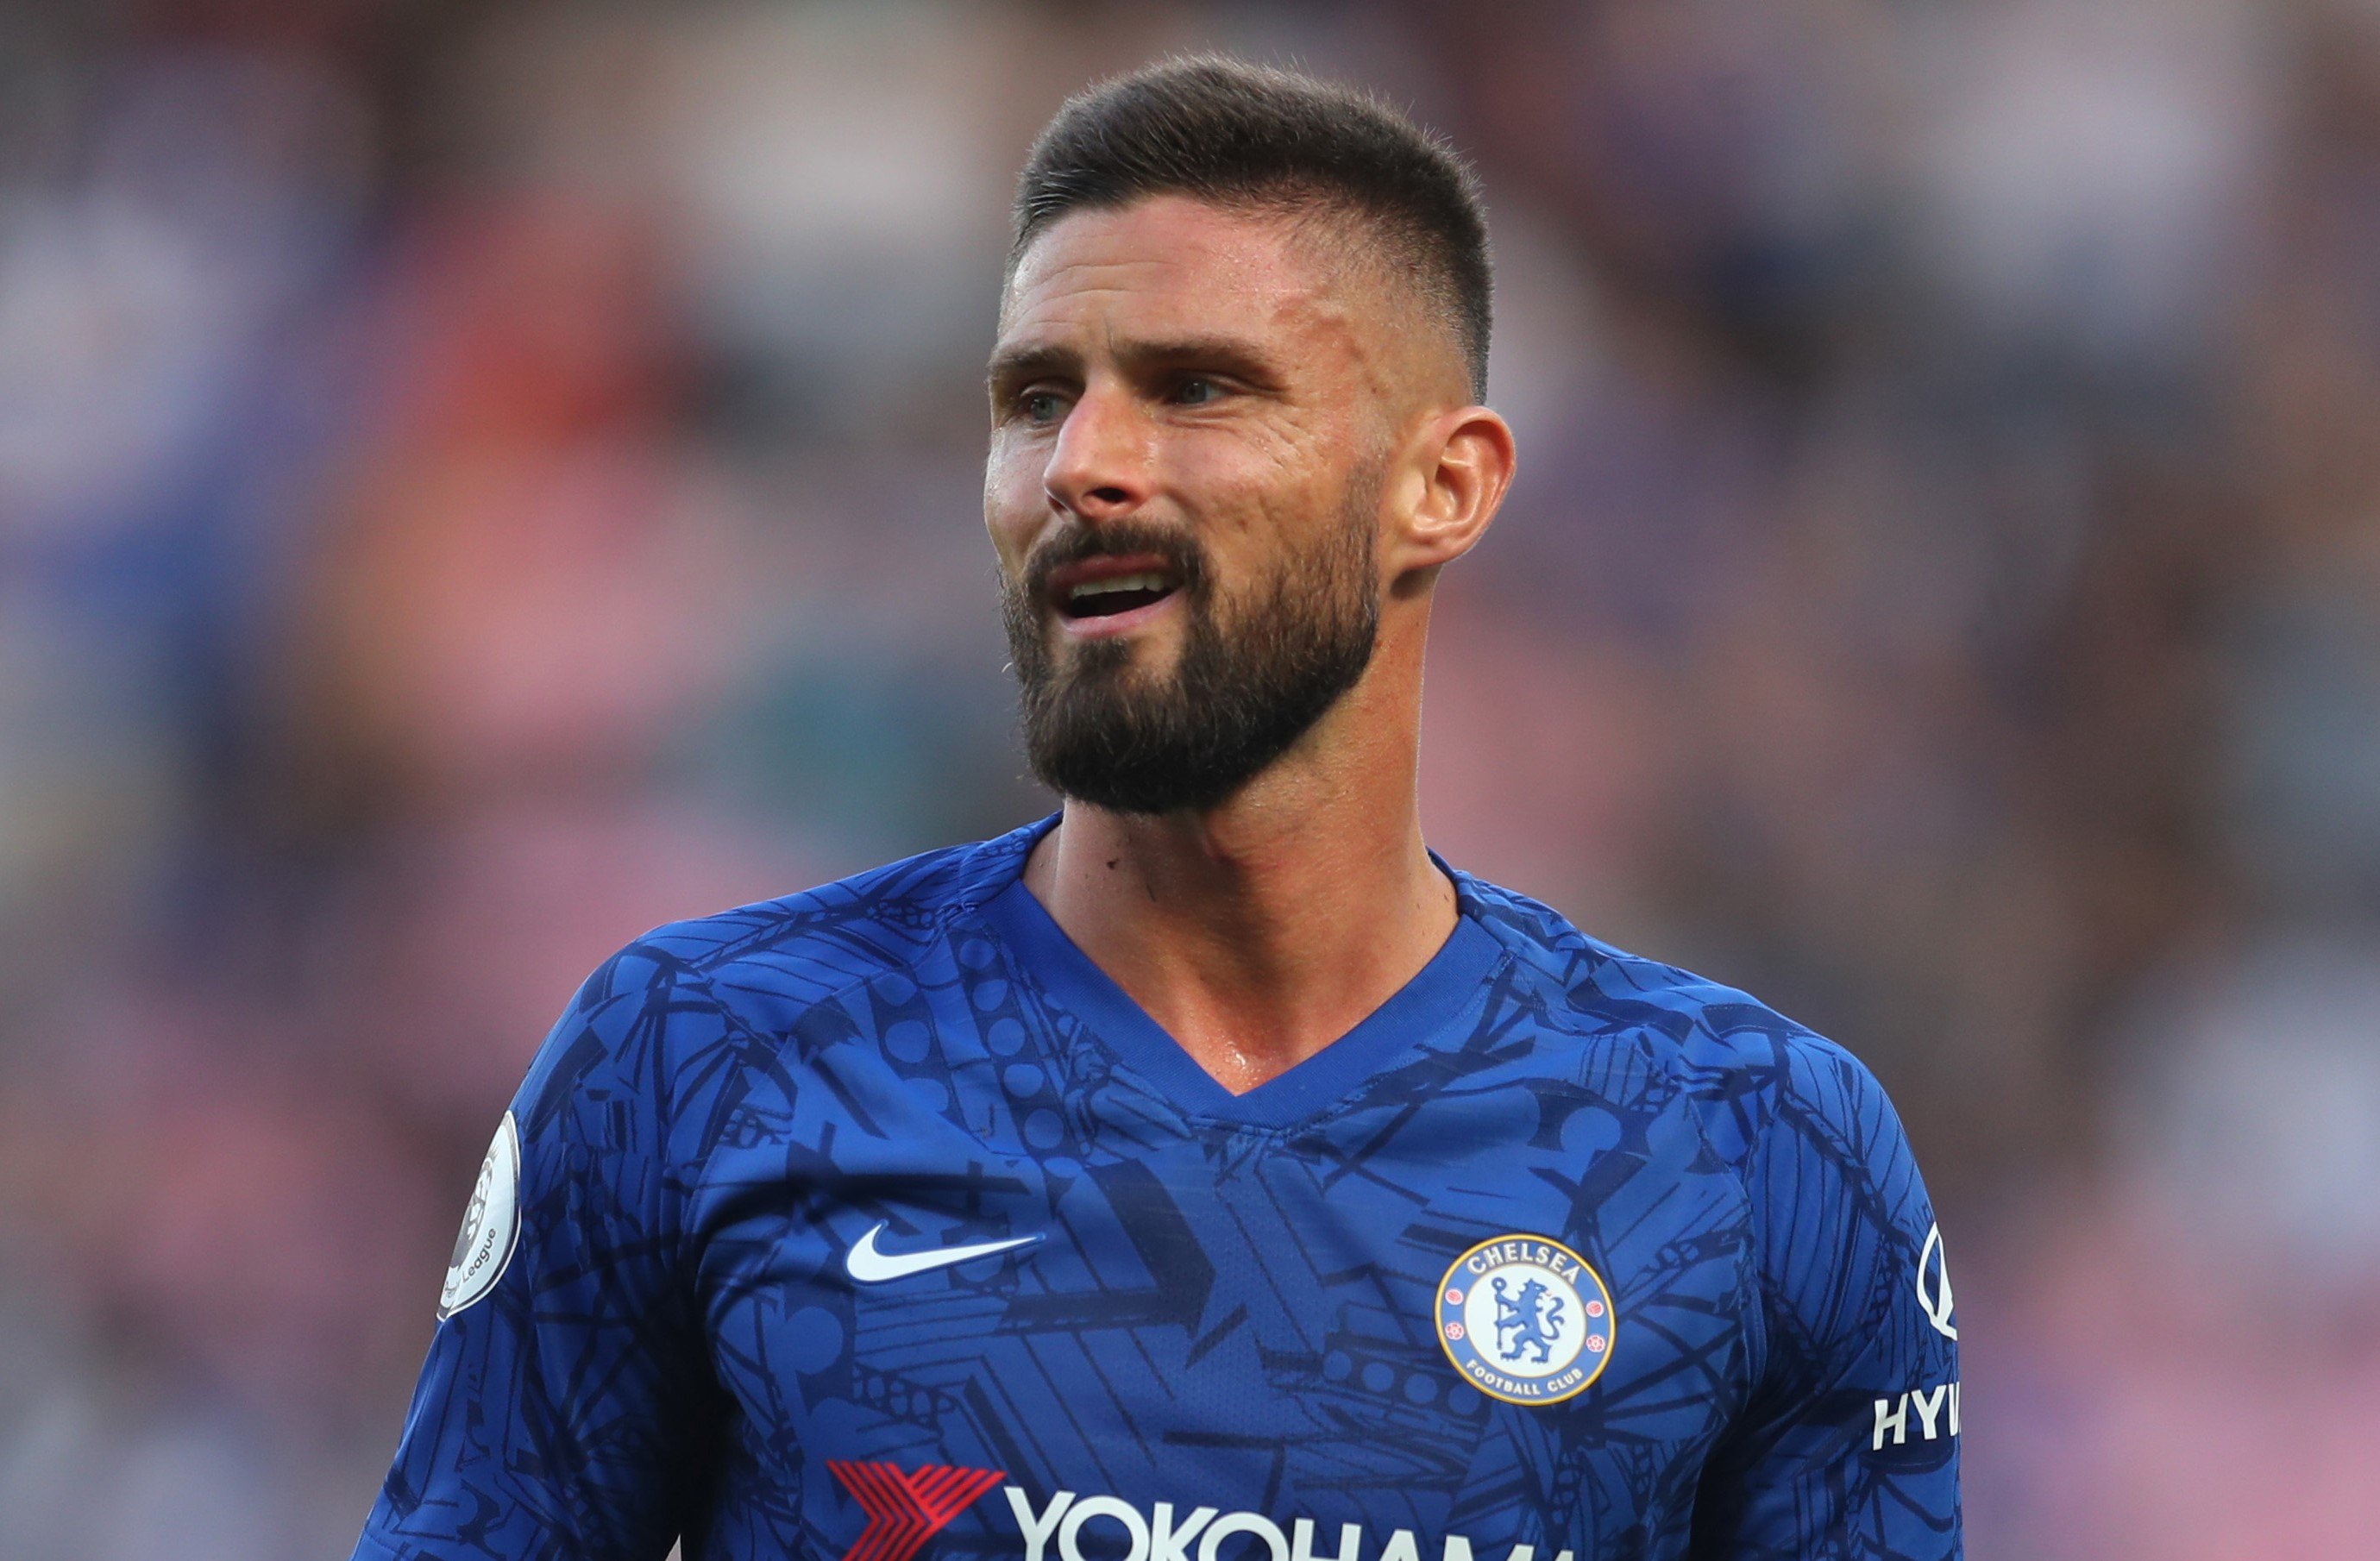 FPL Draft: Goals will come for Giroud